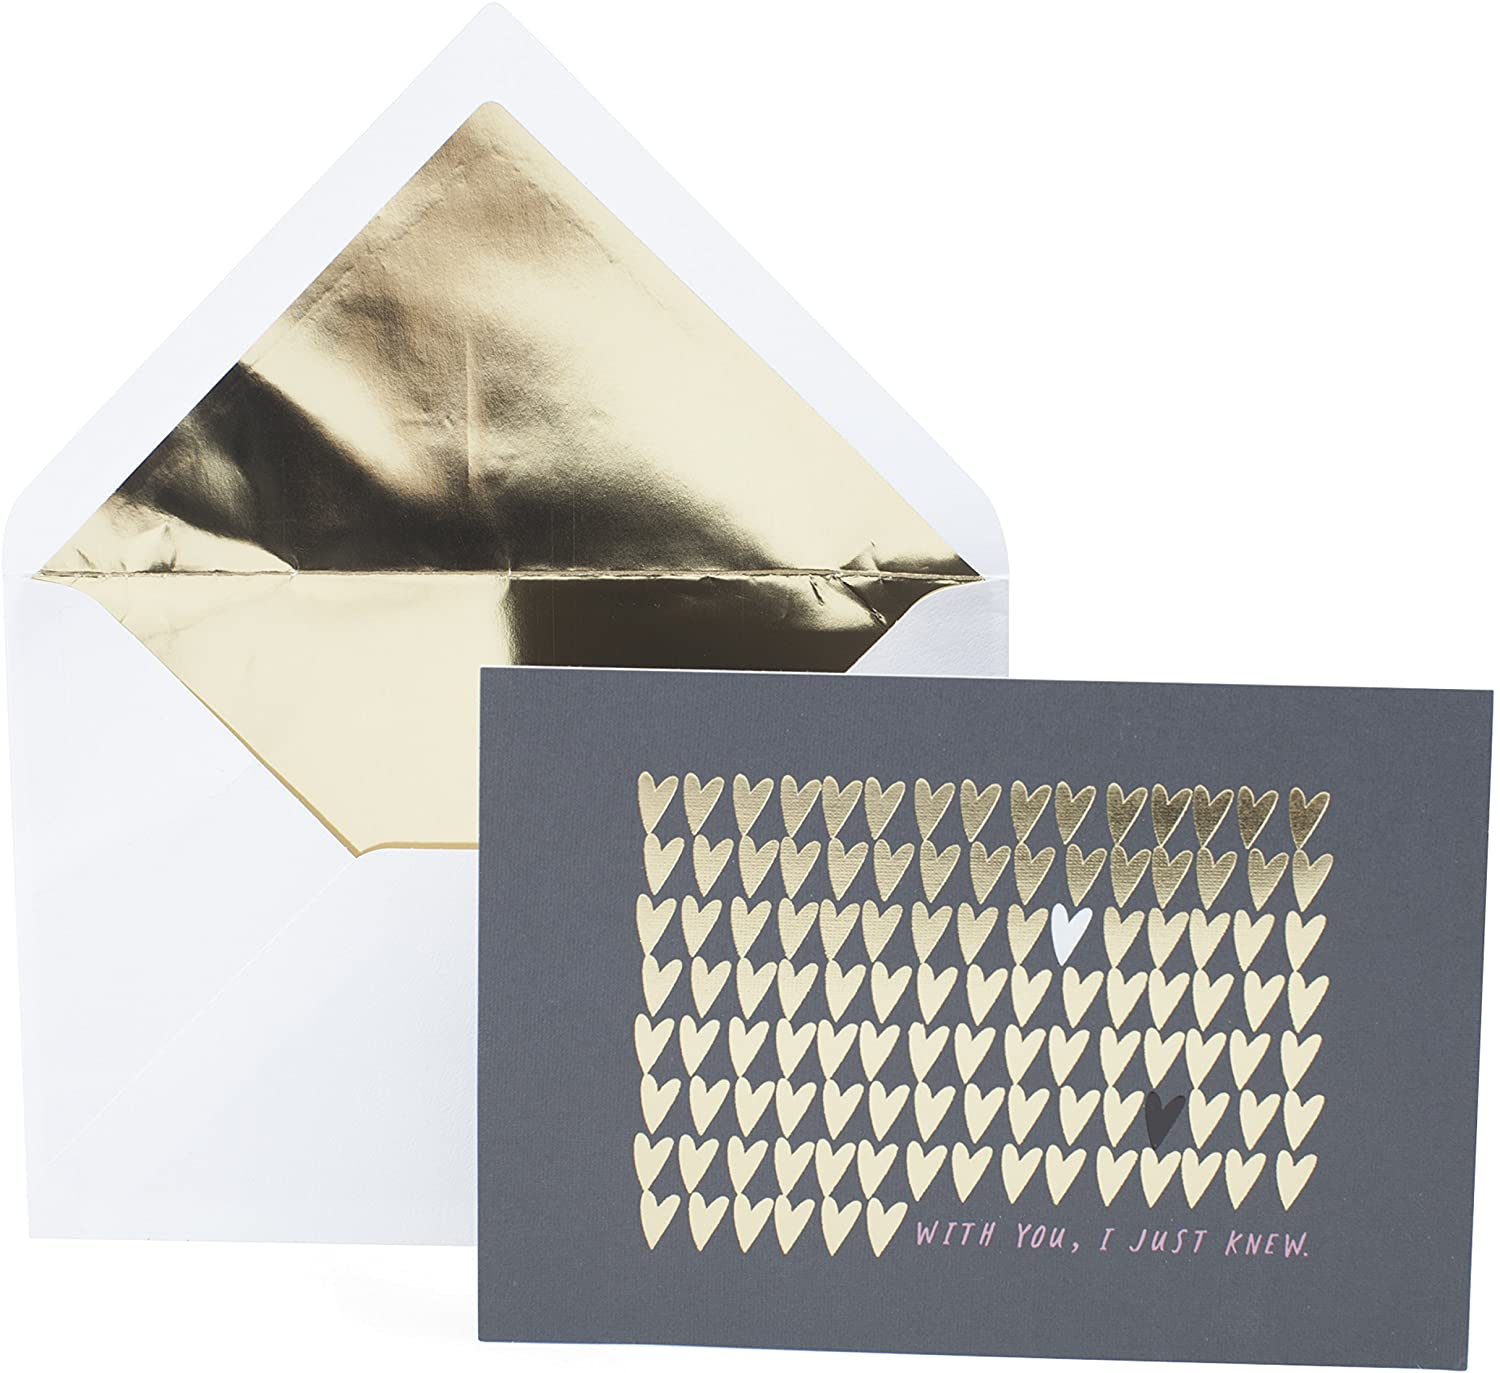 Hallmark Signature Anniversary Card, Love Card for Significant Other (Gold Foil Hearts)